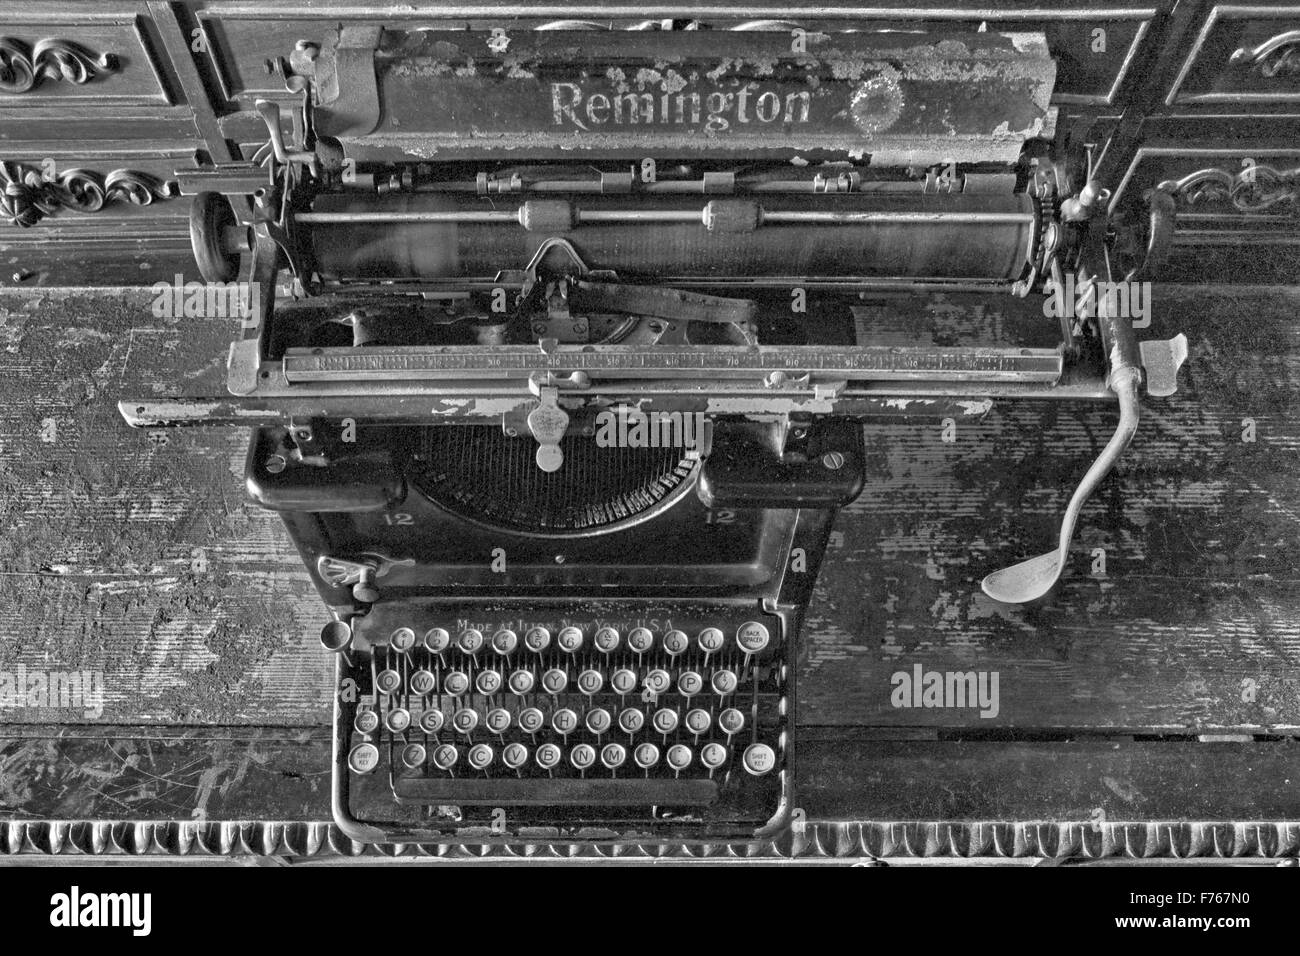 Antique remington typewriter - Stock Image